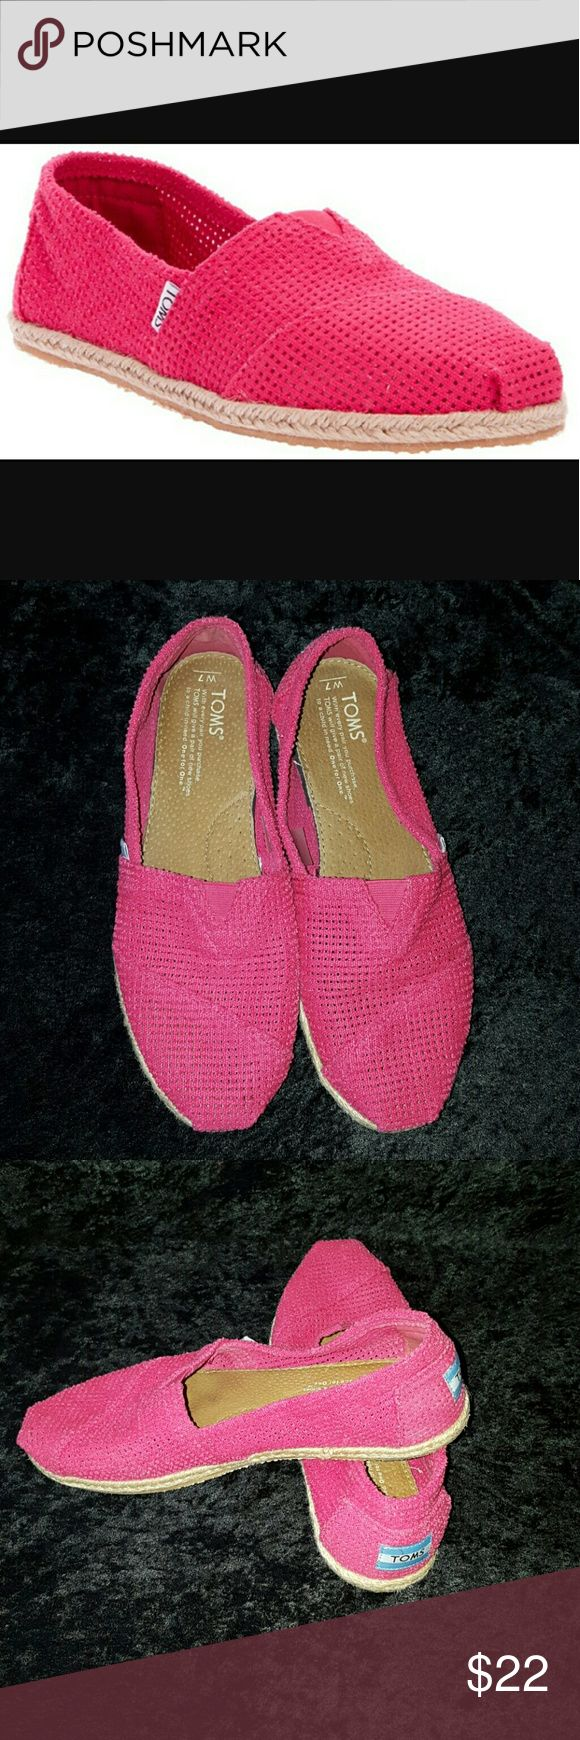 Toms Mesh Cut Out Pink Espadrille Shoes Sz 7 Flirty shoes that make a statement all while comfortable to wear! No flaws other than normal wear. Please refer to photos. TOMS Shoes